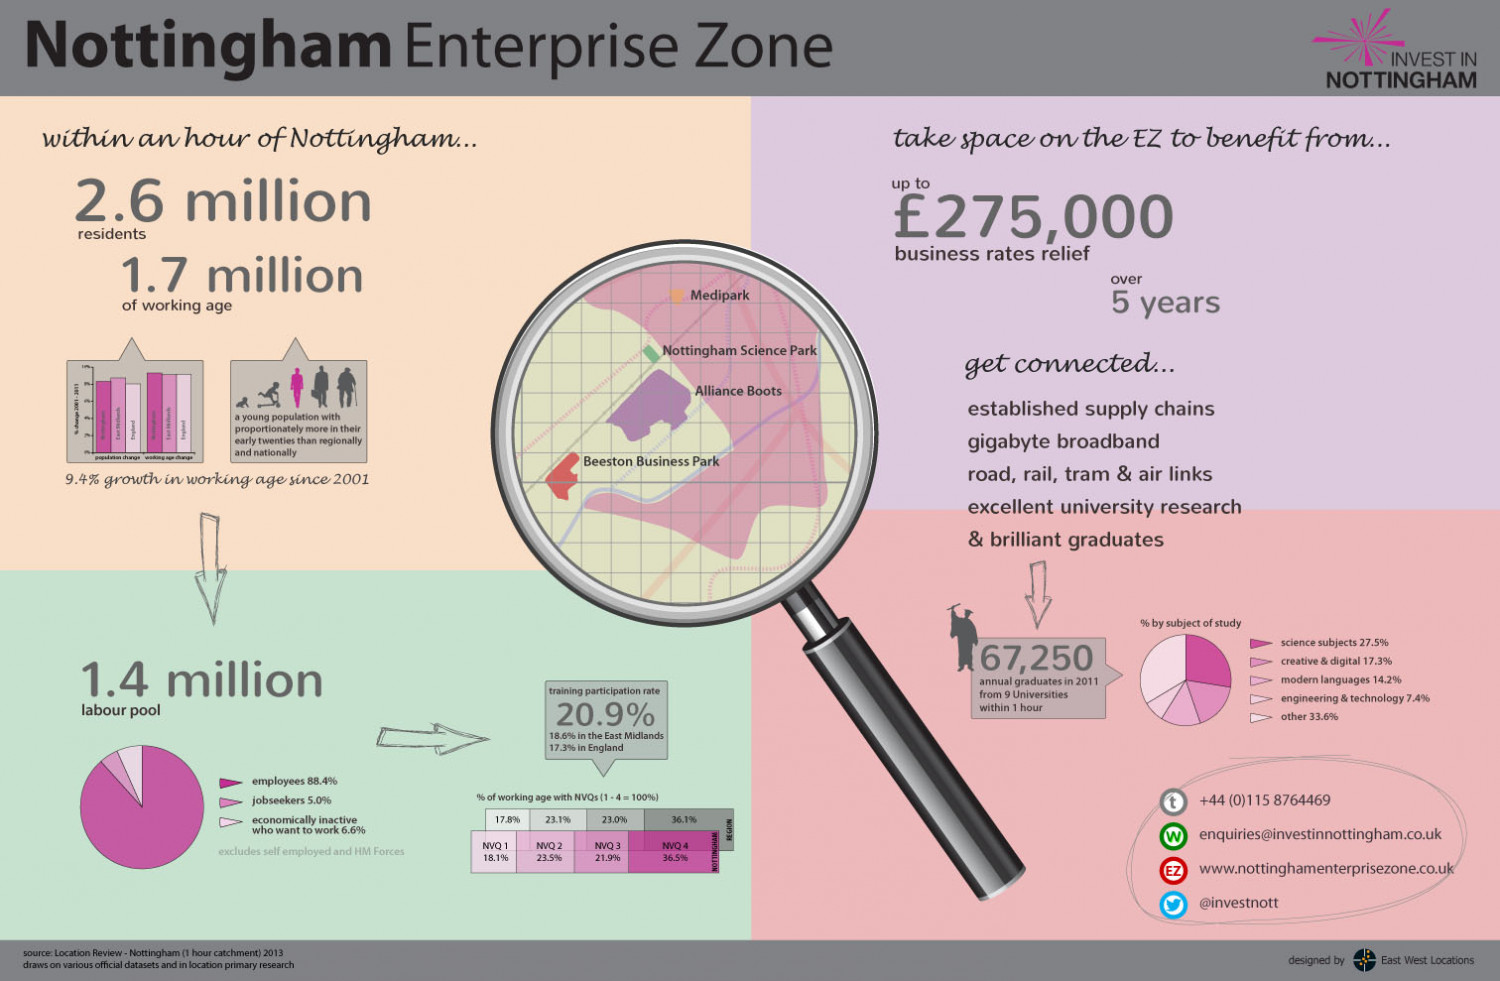 Nottingham Enterprise Zone (Landscape) Infographic